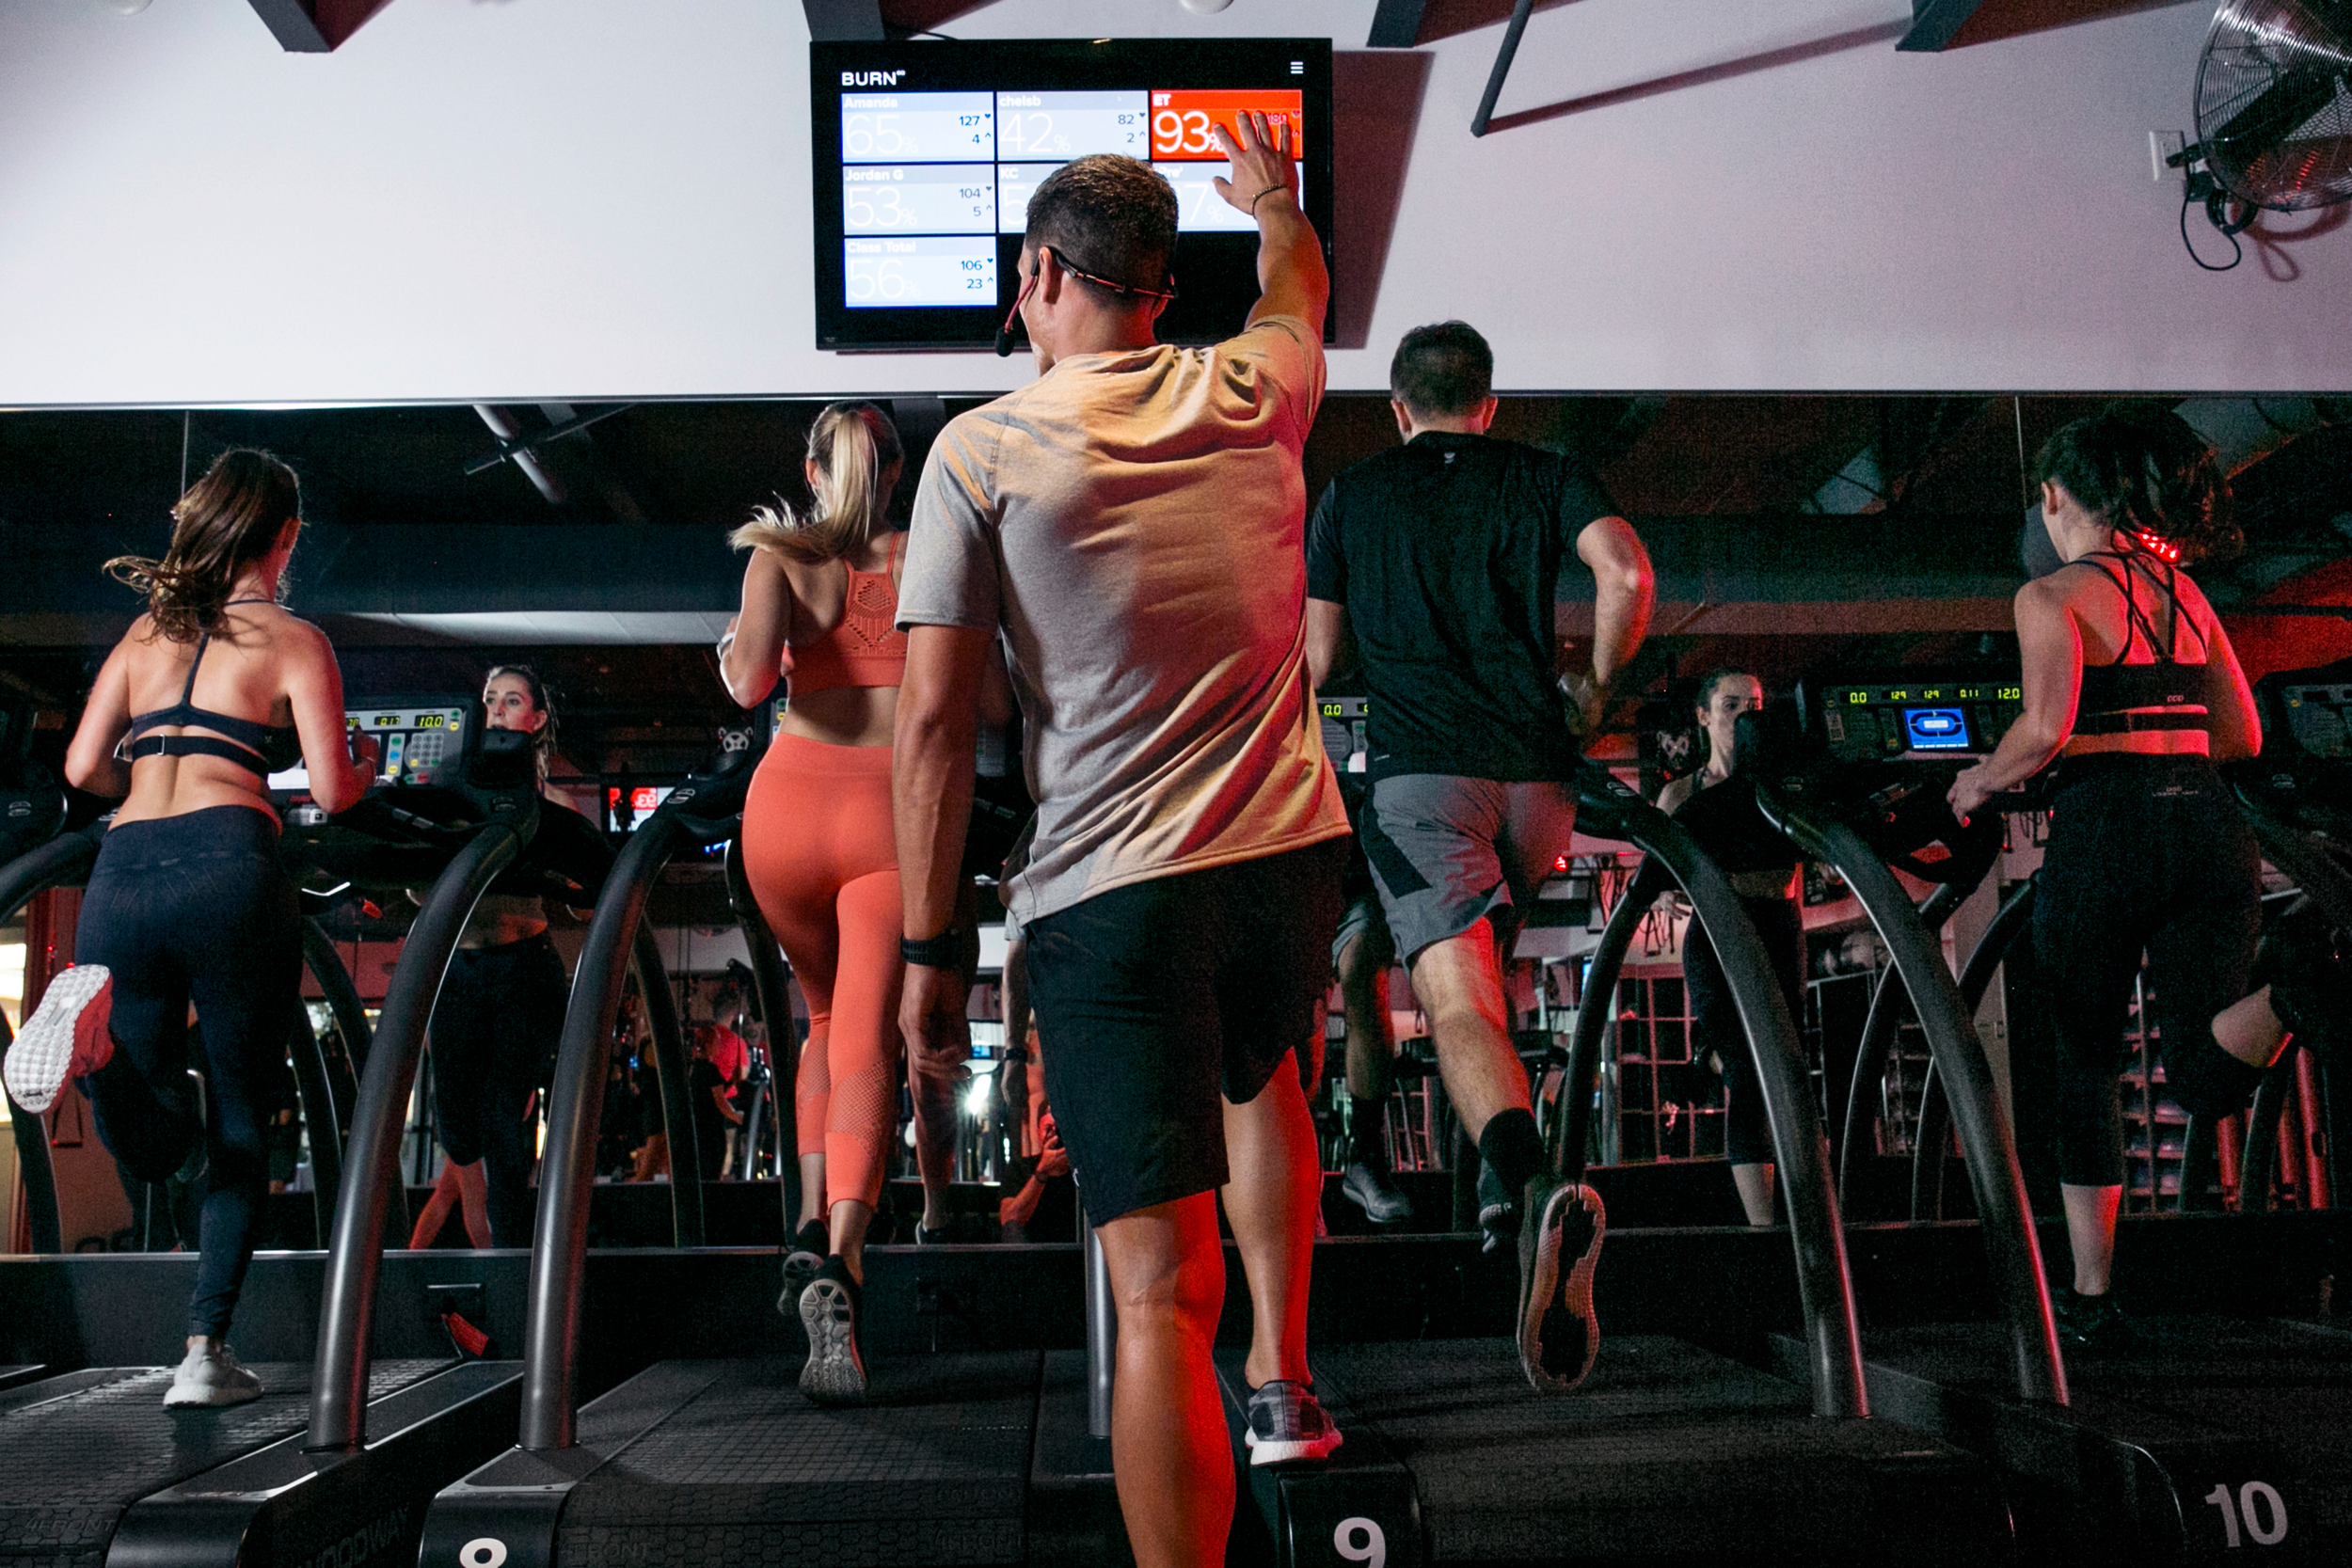 SEE YOUR WORK - Monitor your heart rate and see how many calories you're BURNing in real time on the in-class performance boards.